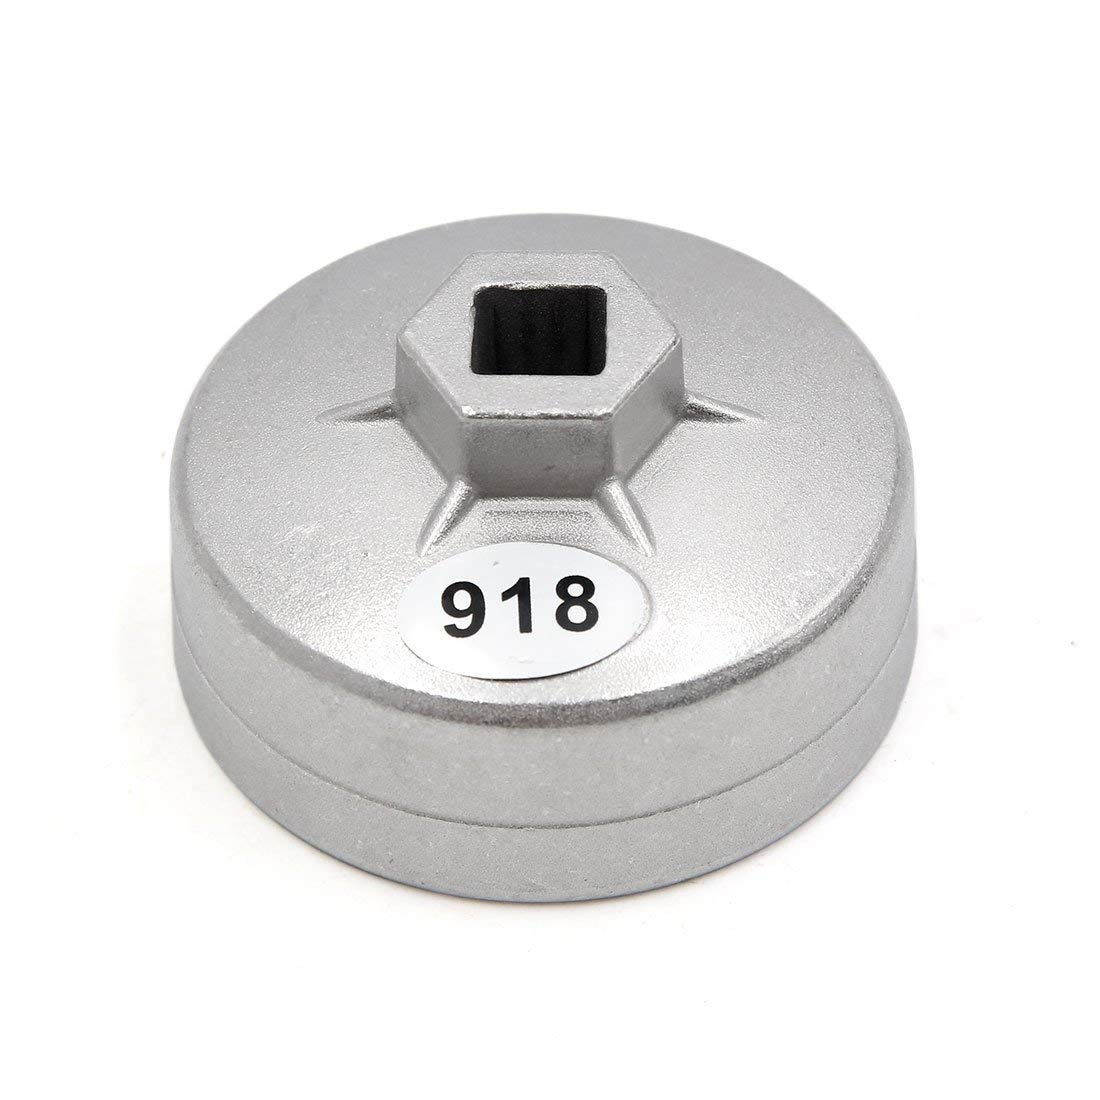 15 Flutes Oil Filter Cap Wrench Tool,Cuque Oil Filter Wrench Cap Housing Tool Remover 904 Aluminum Cap Oil Filter Wrench Car Socket Remover Tool 79mm